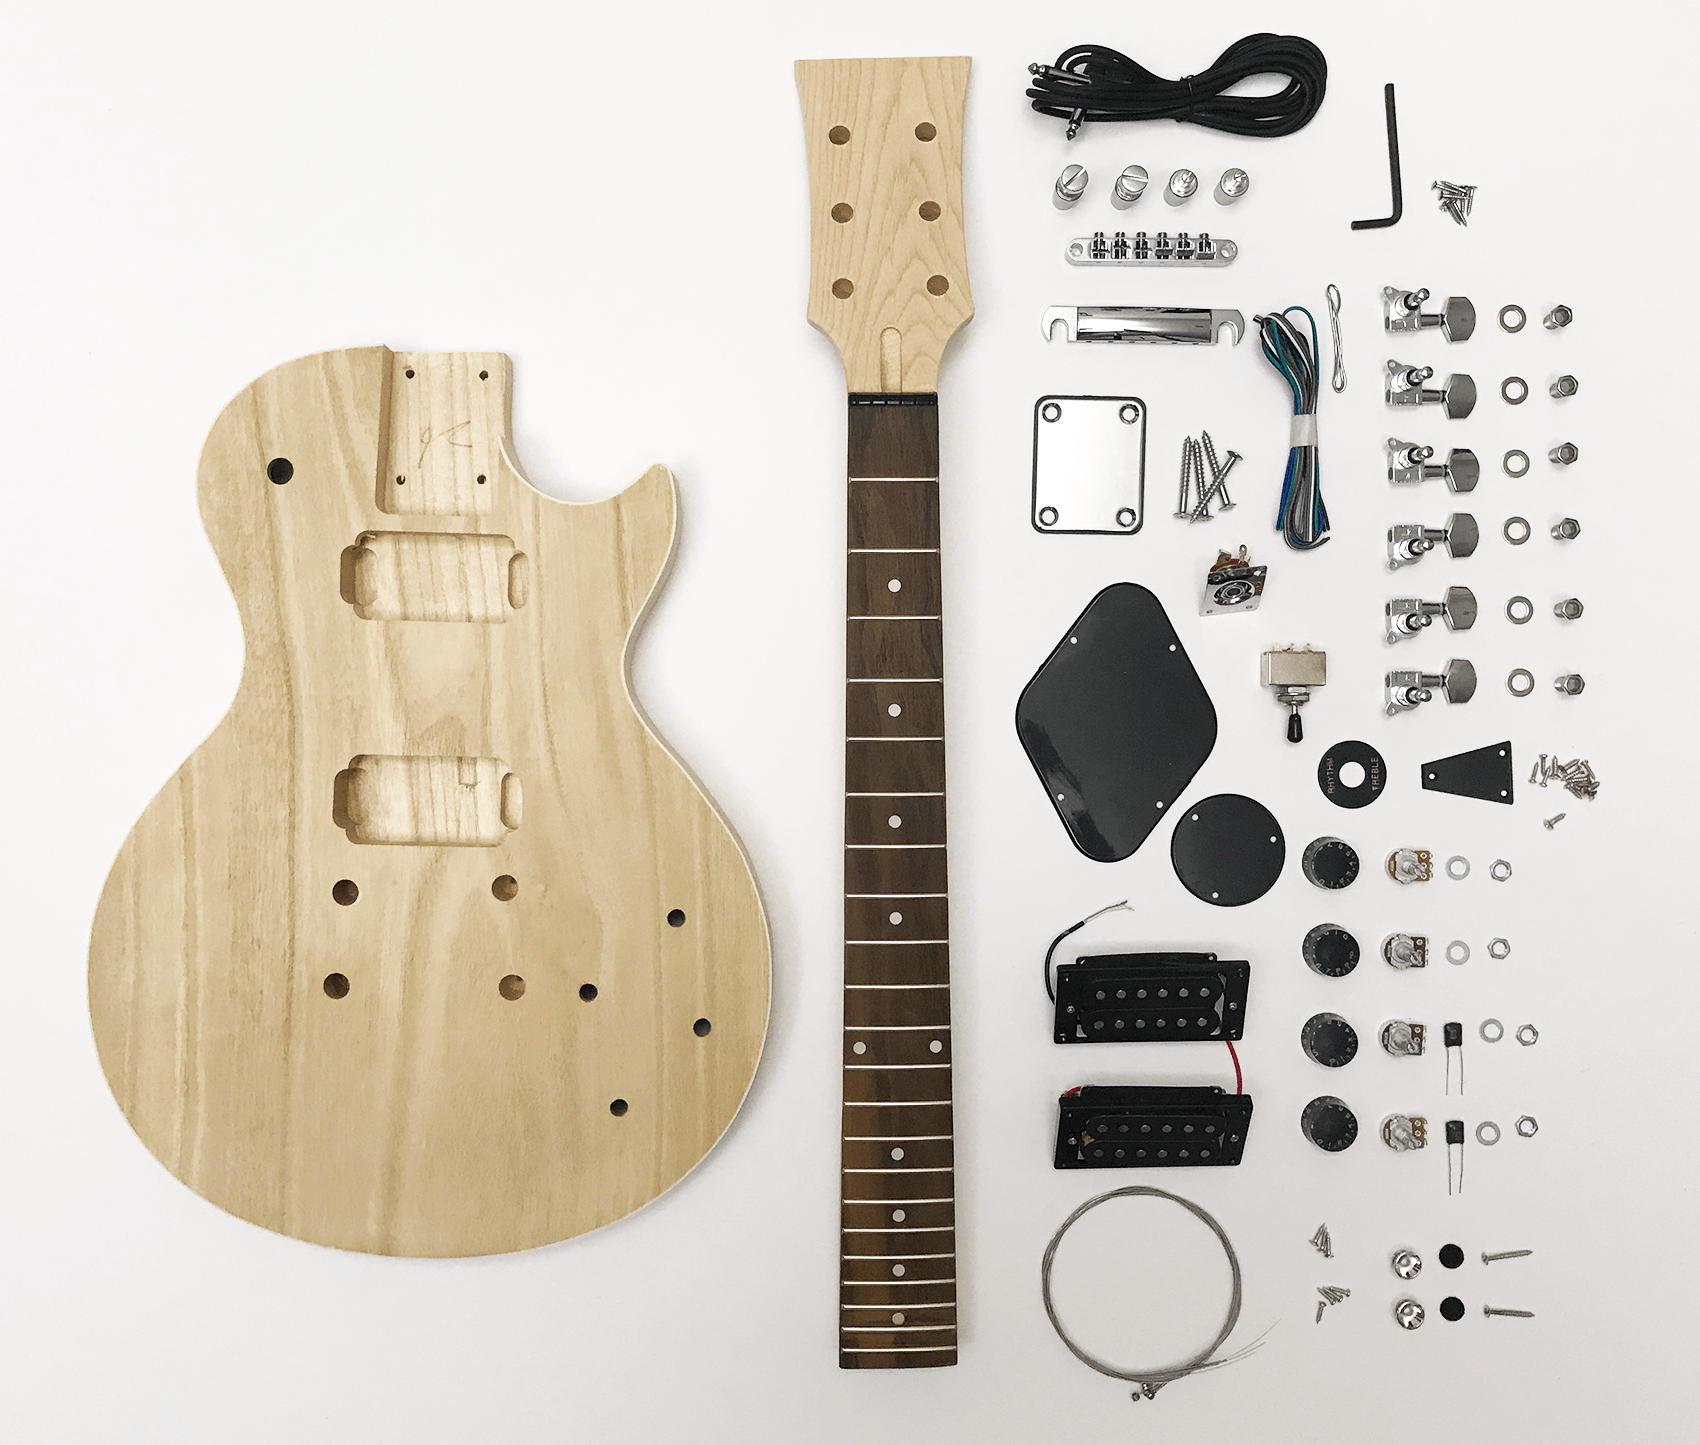 5 diy christmas projects guitarists will love musician tuts diy guitar projects take more time than guitar pedal kits as it involves gluing painting fine tuning and personalizing although some diyers may choose solutioingenieria Images